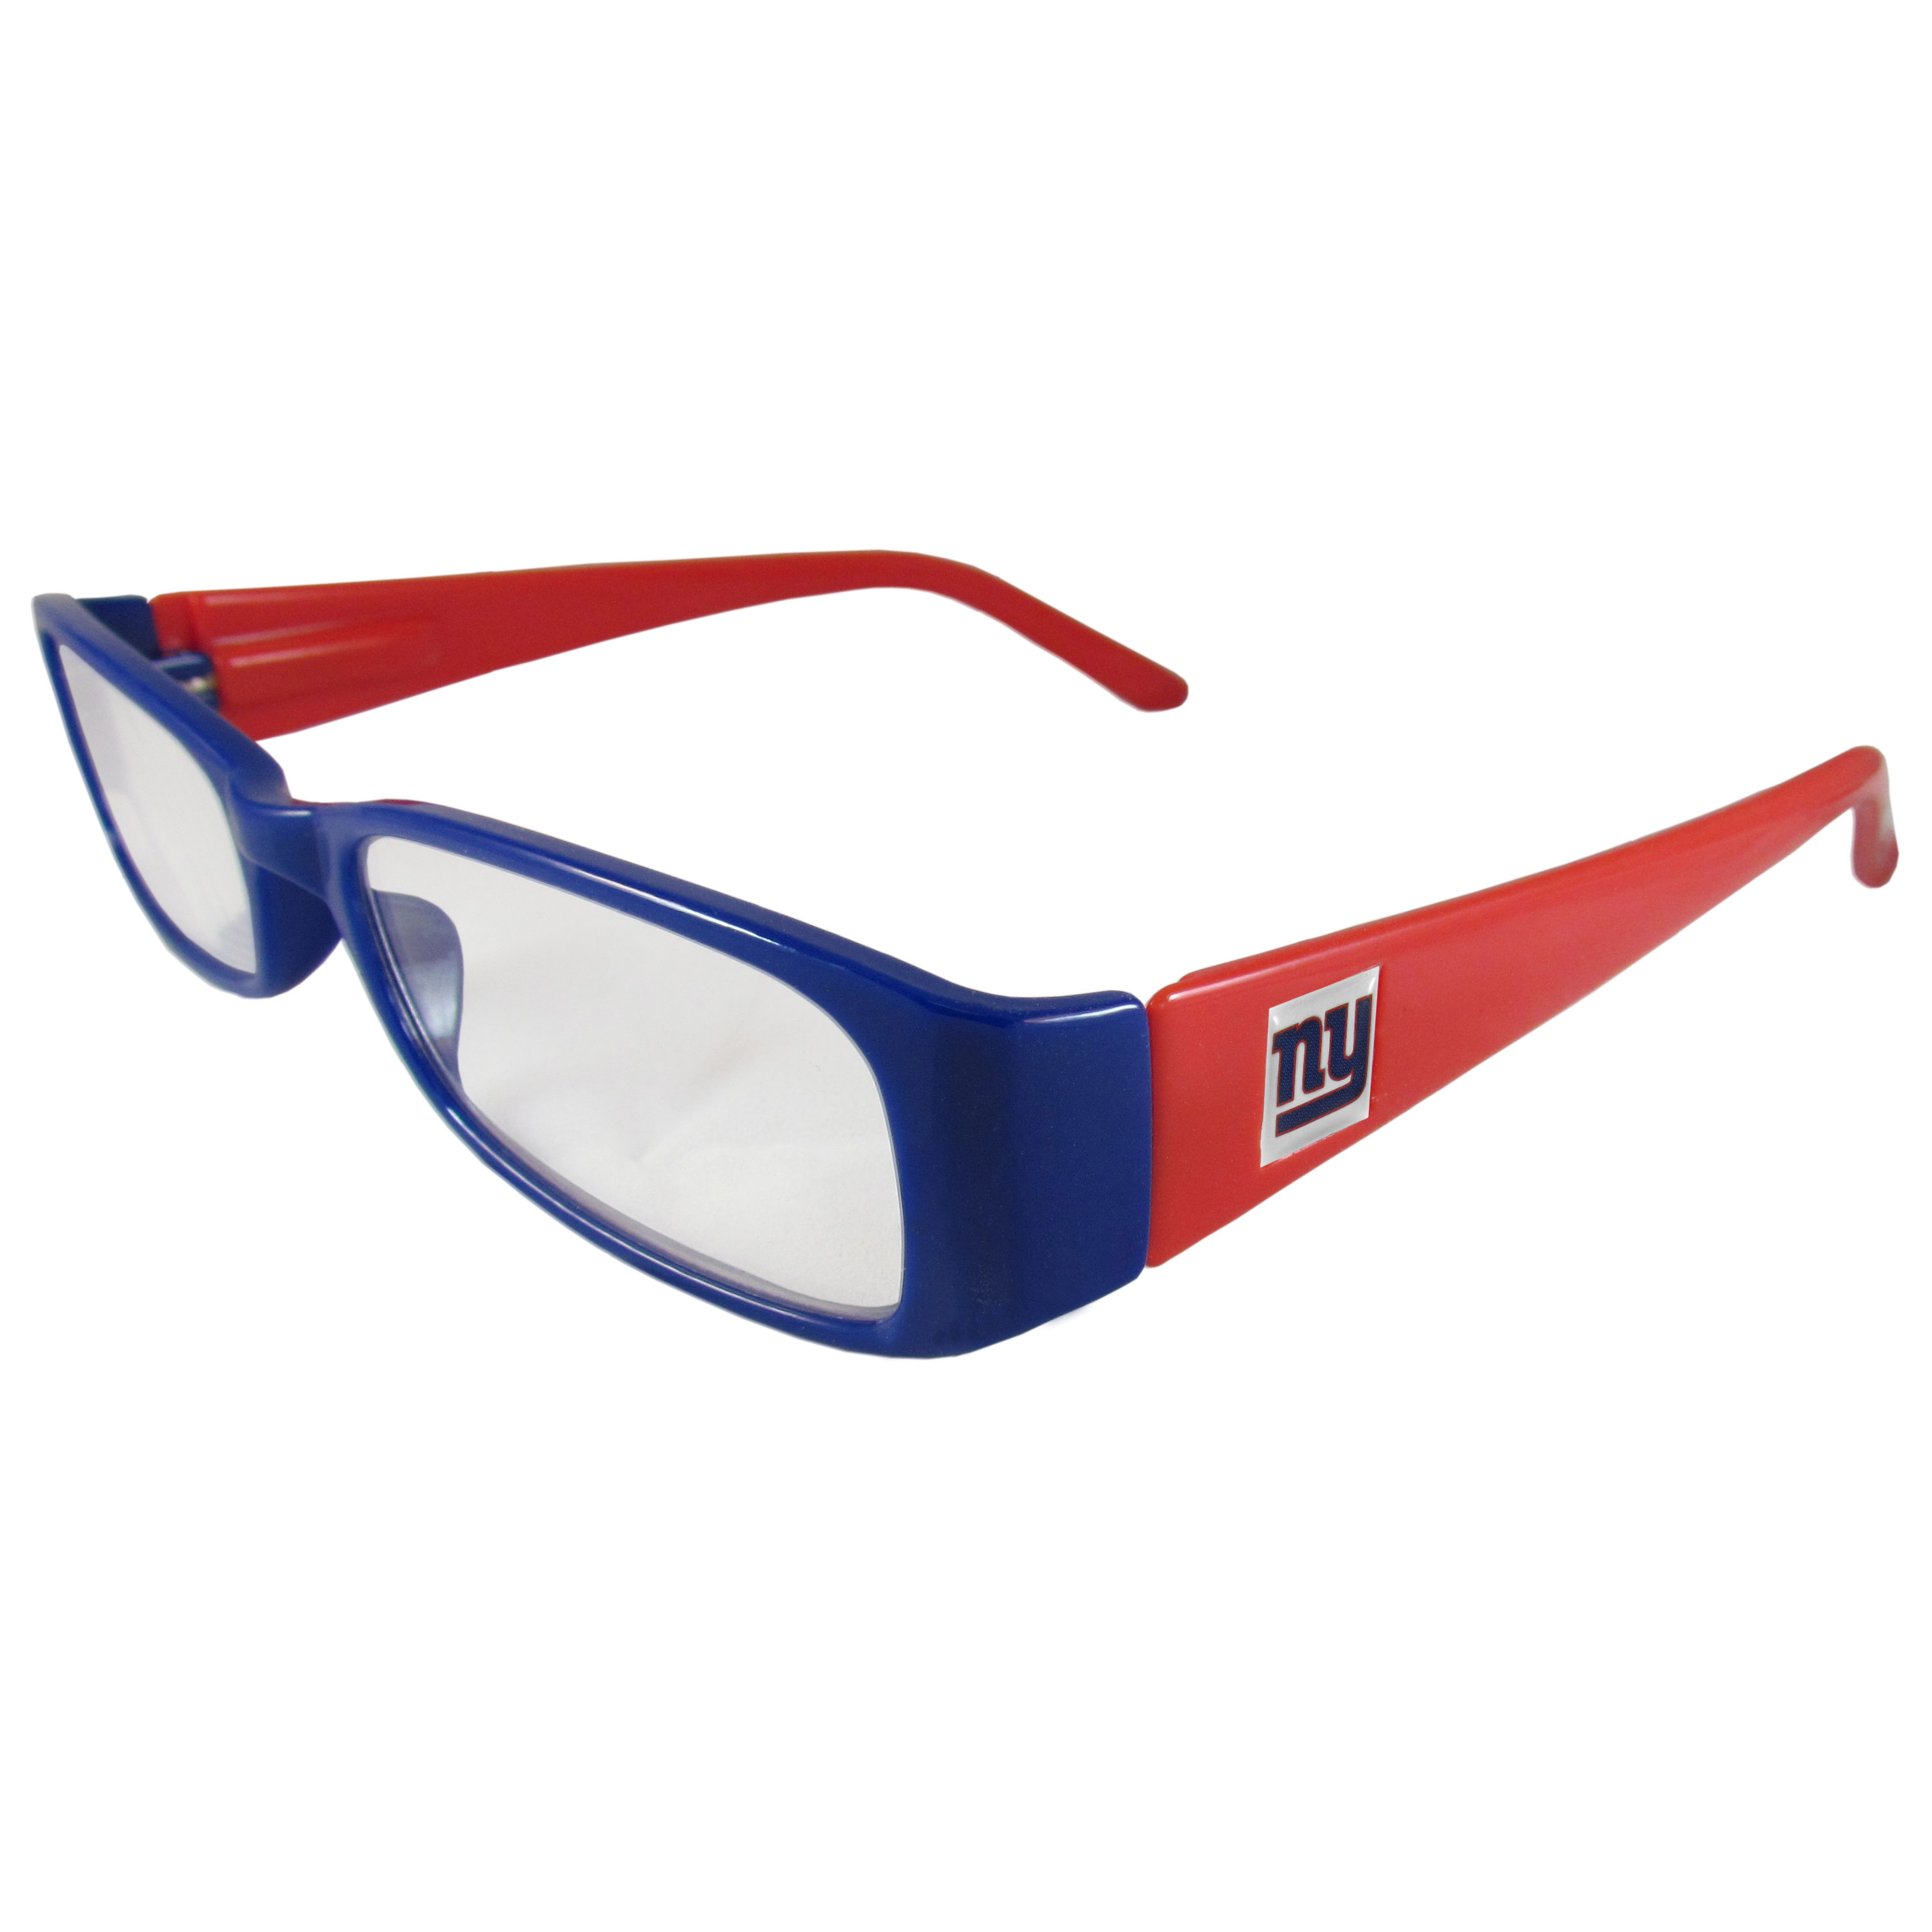 New York Giants Reading Glasses +1.25 - Our New York Giants reading glasses are 5.25 inches wide and feature the team logo on each arm. Magnification Power 1.25